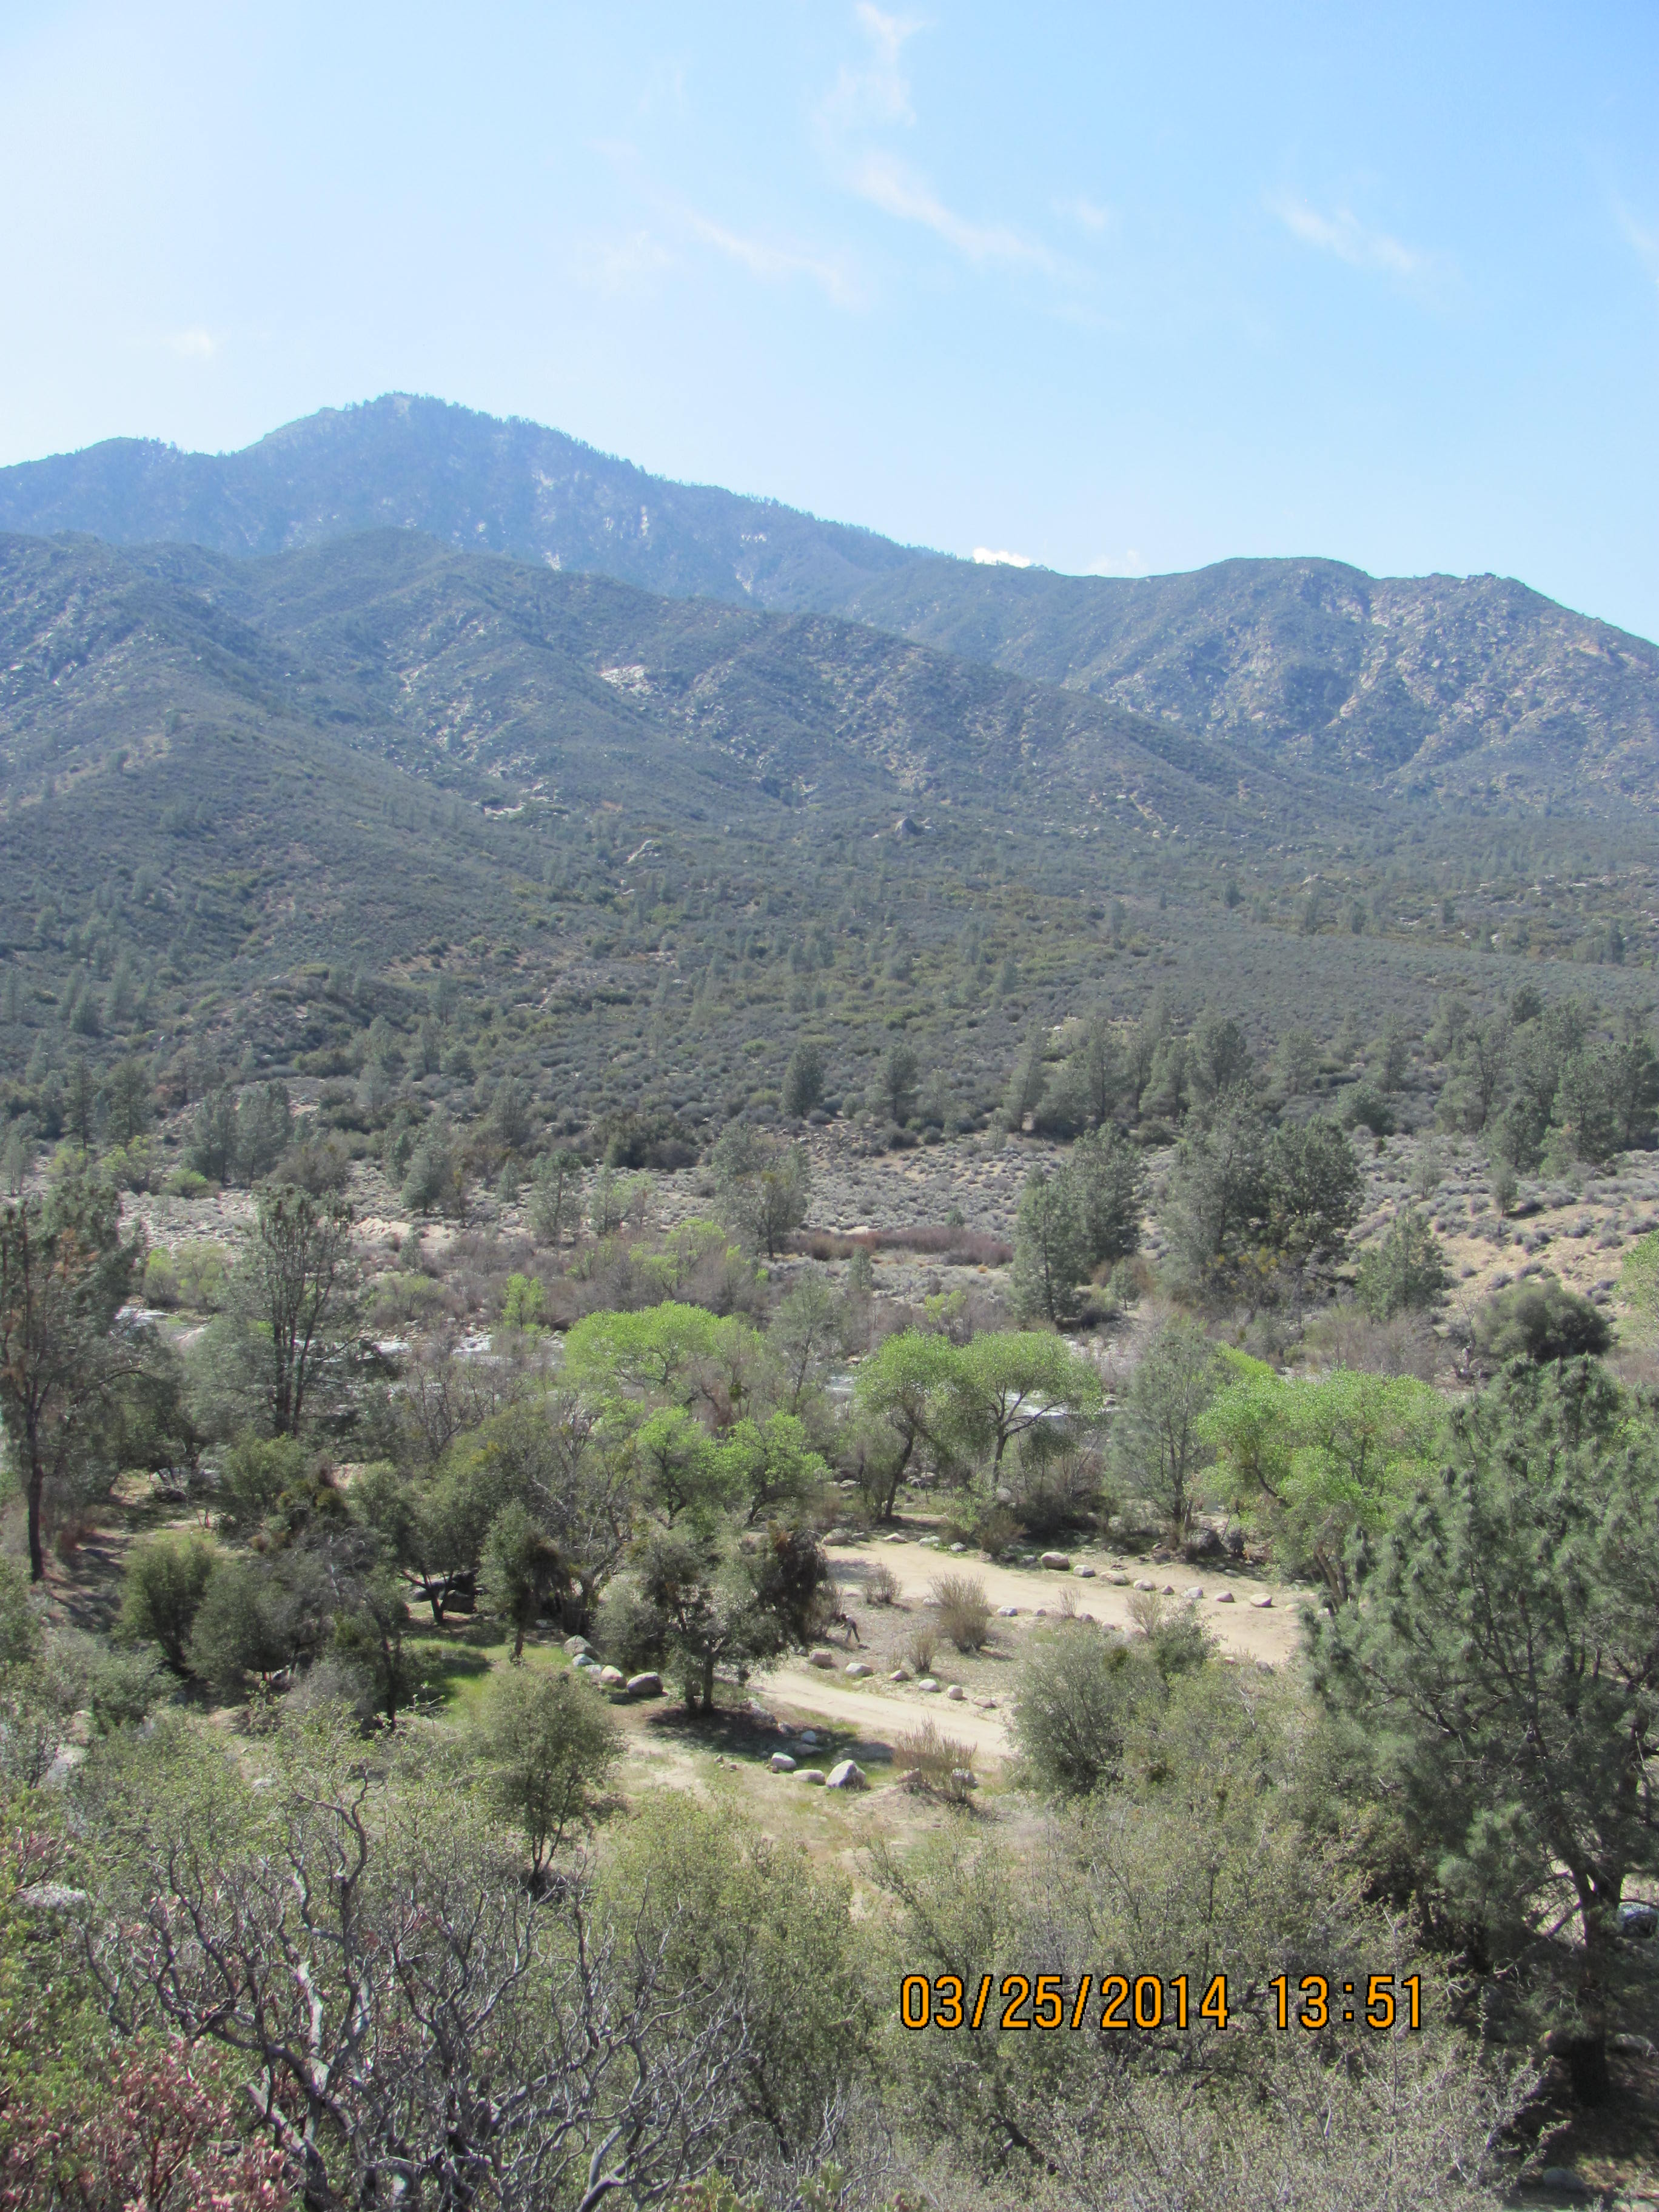 View looking down at Springhill from across M99, Kern River and mountains in background